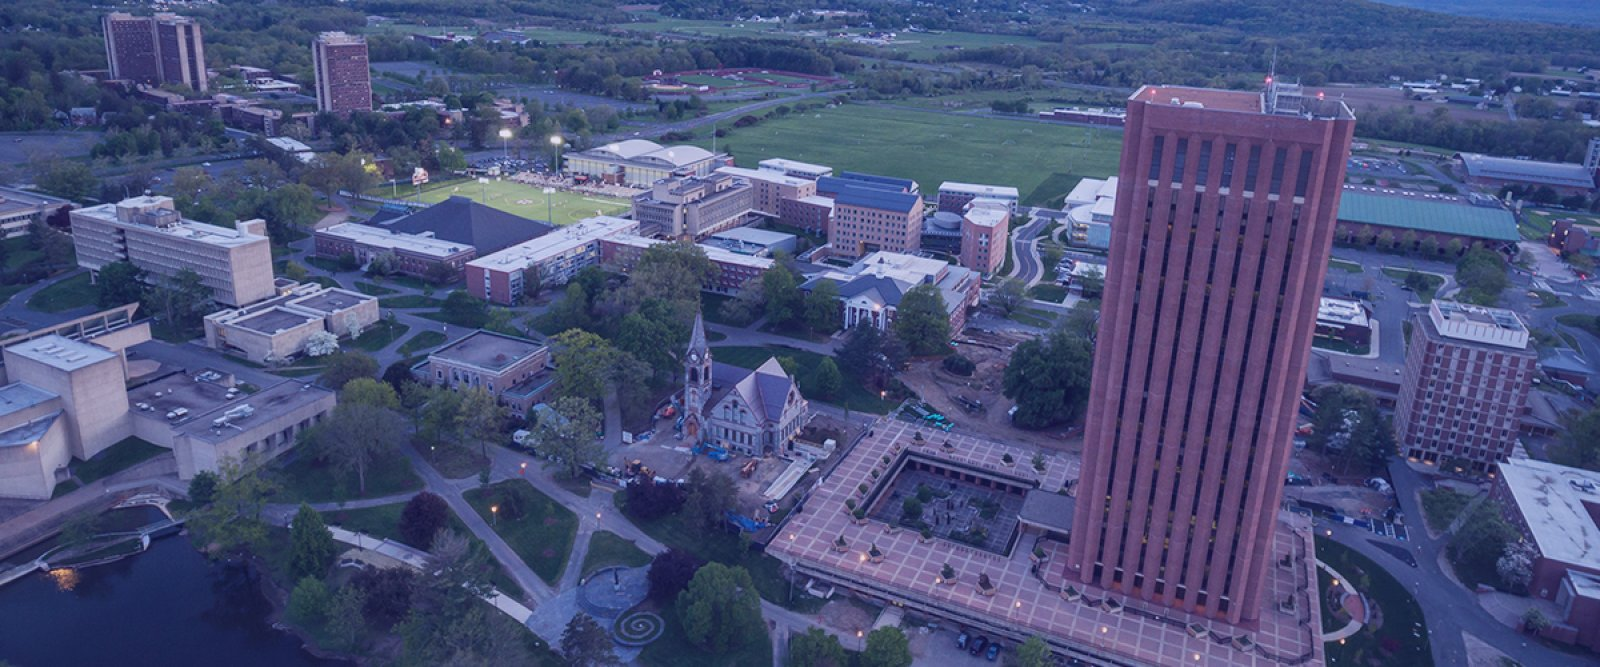 Aerial photo of UMass Amherst campus